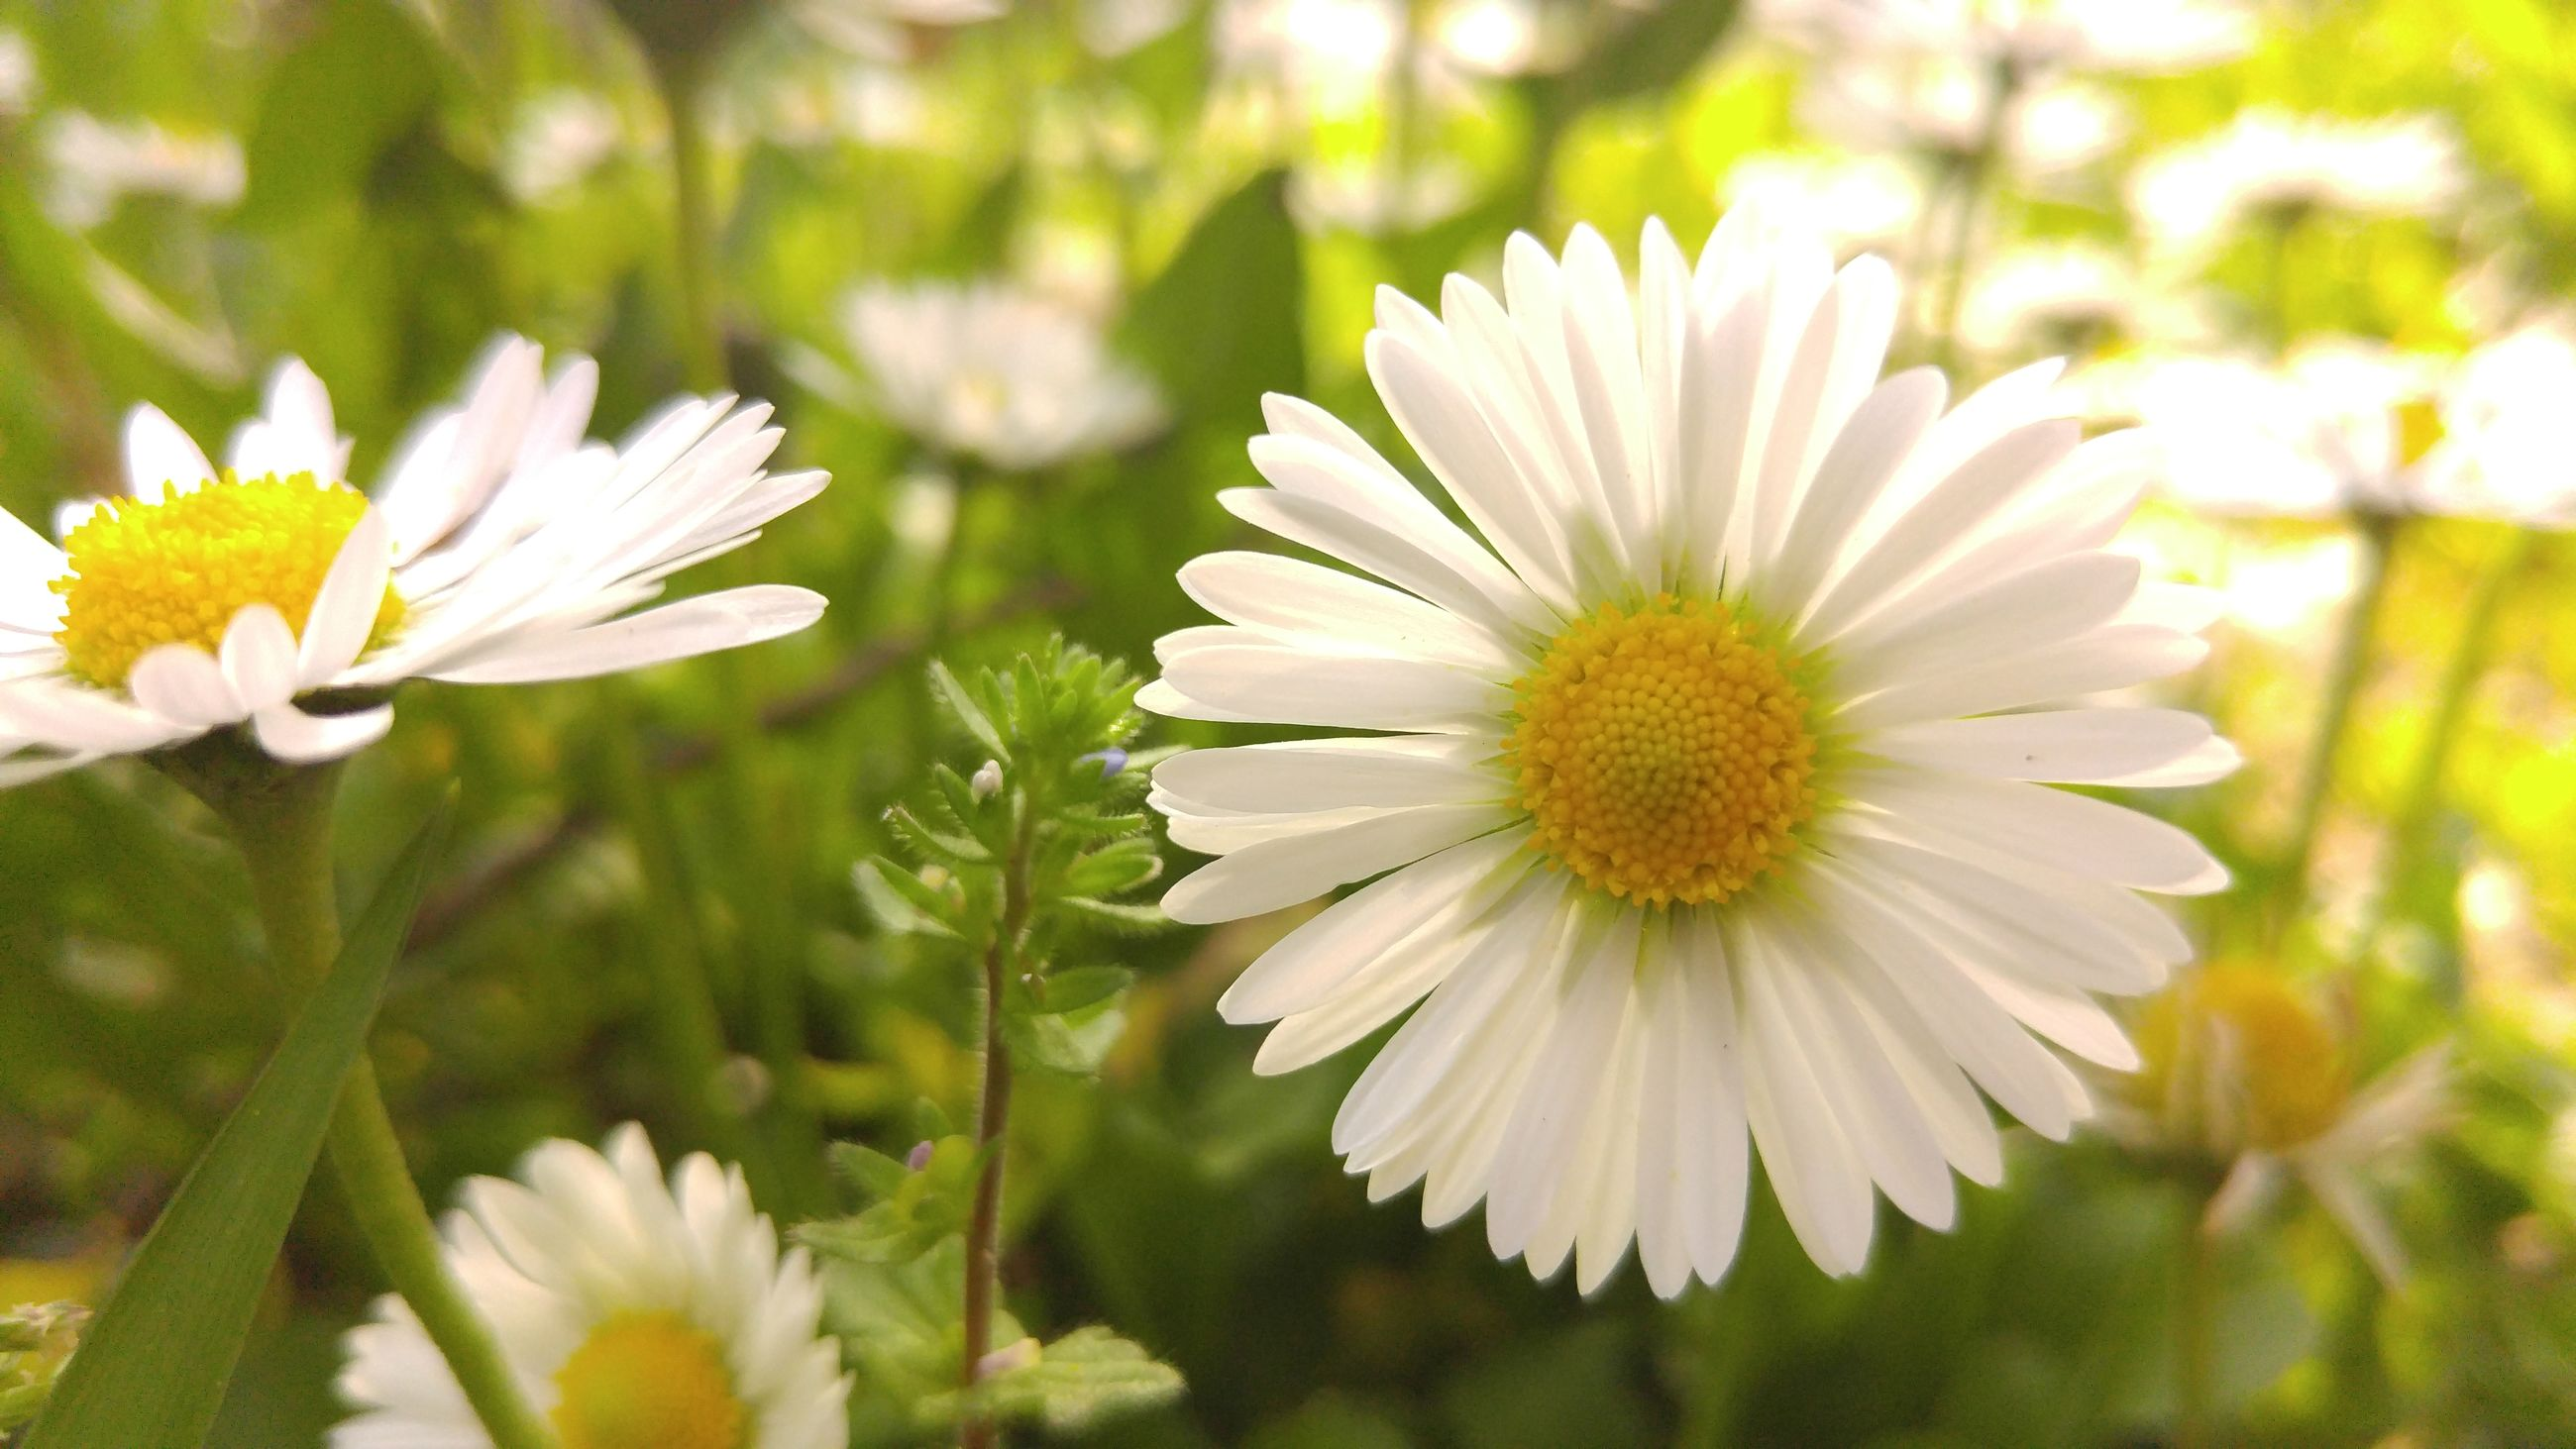 flower, freshness, petal, fragility, flower head, white color, growth, beauty in nature, focus on foreground, blooming, close-up, nature, pollen, plant, daisy, in bloom, day, stem, blossom, outdoors